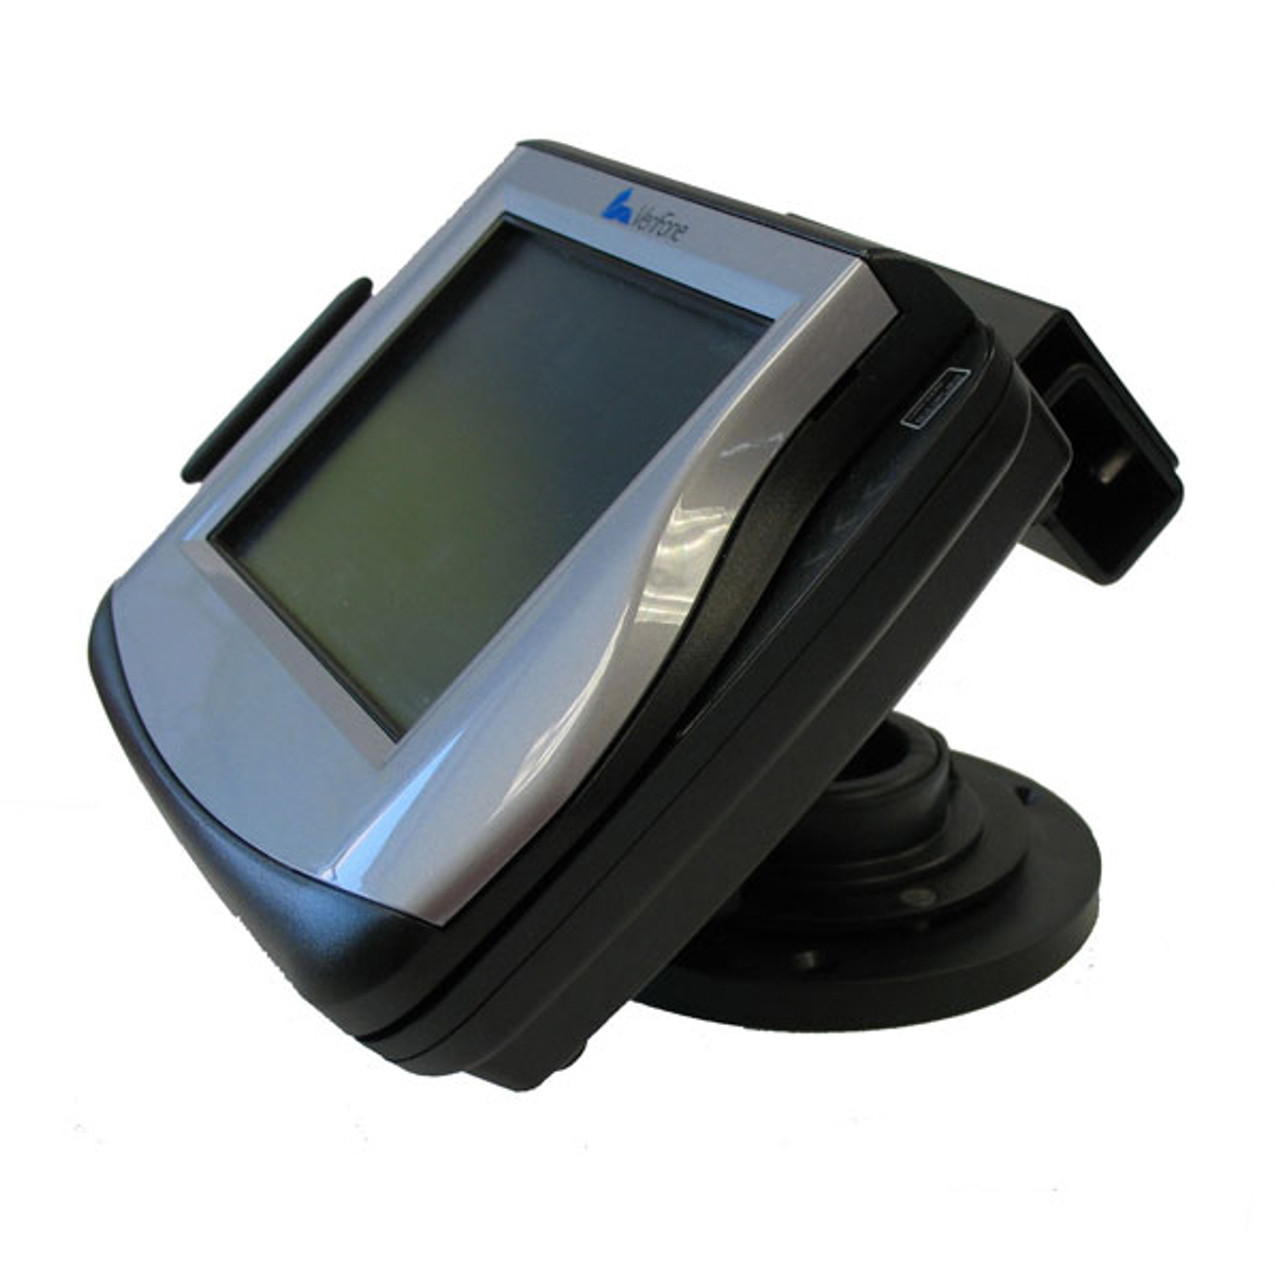 VeriFone MX880 Credit Card Stand Locking Low Profile by Swivel Stands